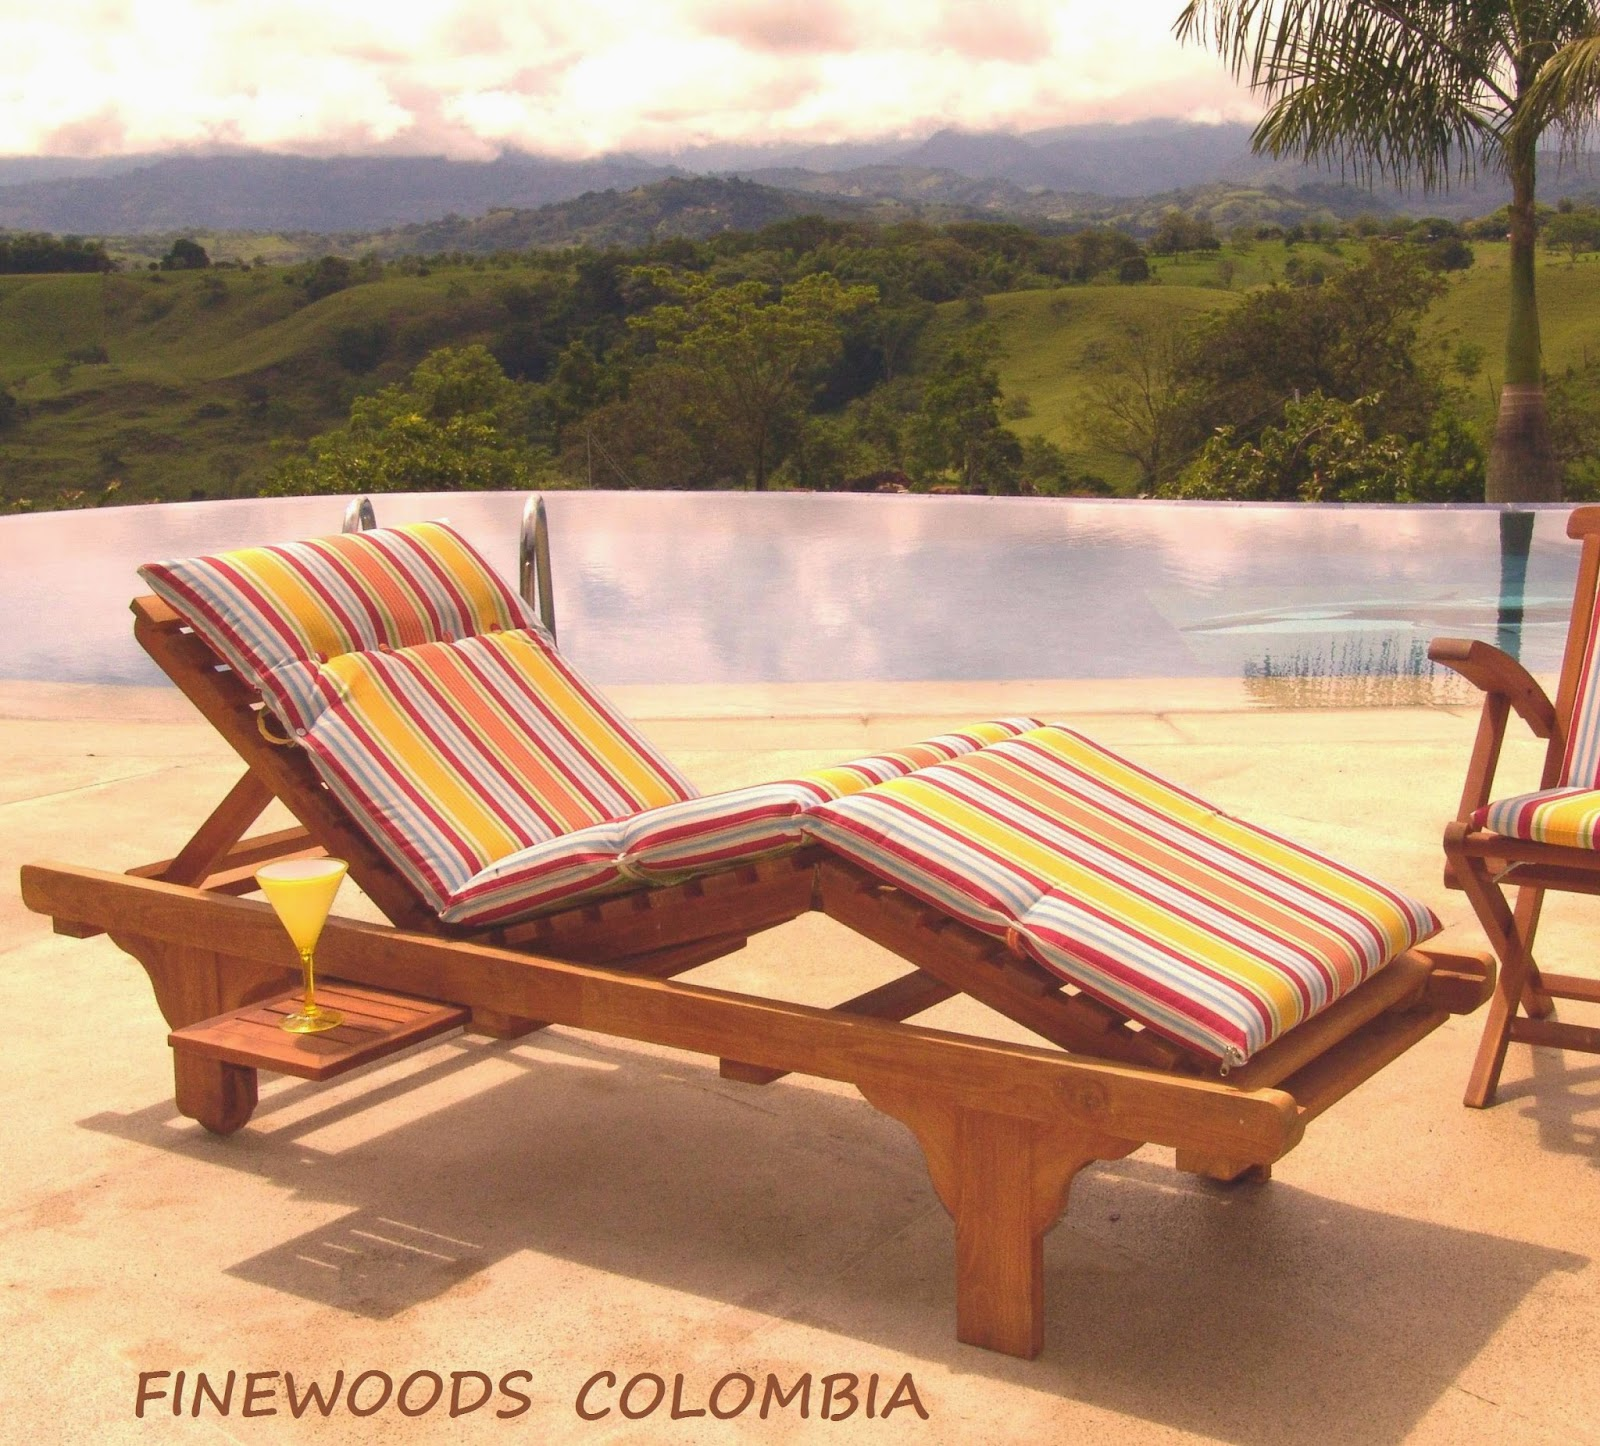 Finewoods Colombia Muebles Exterior # Muebles Colombia